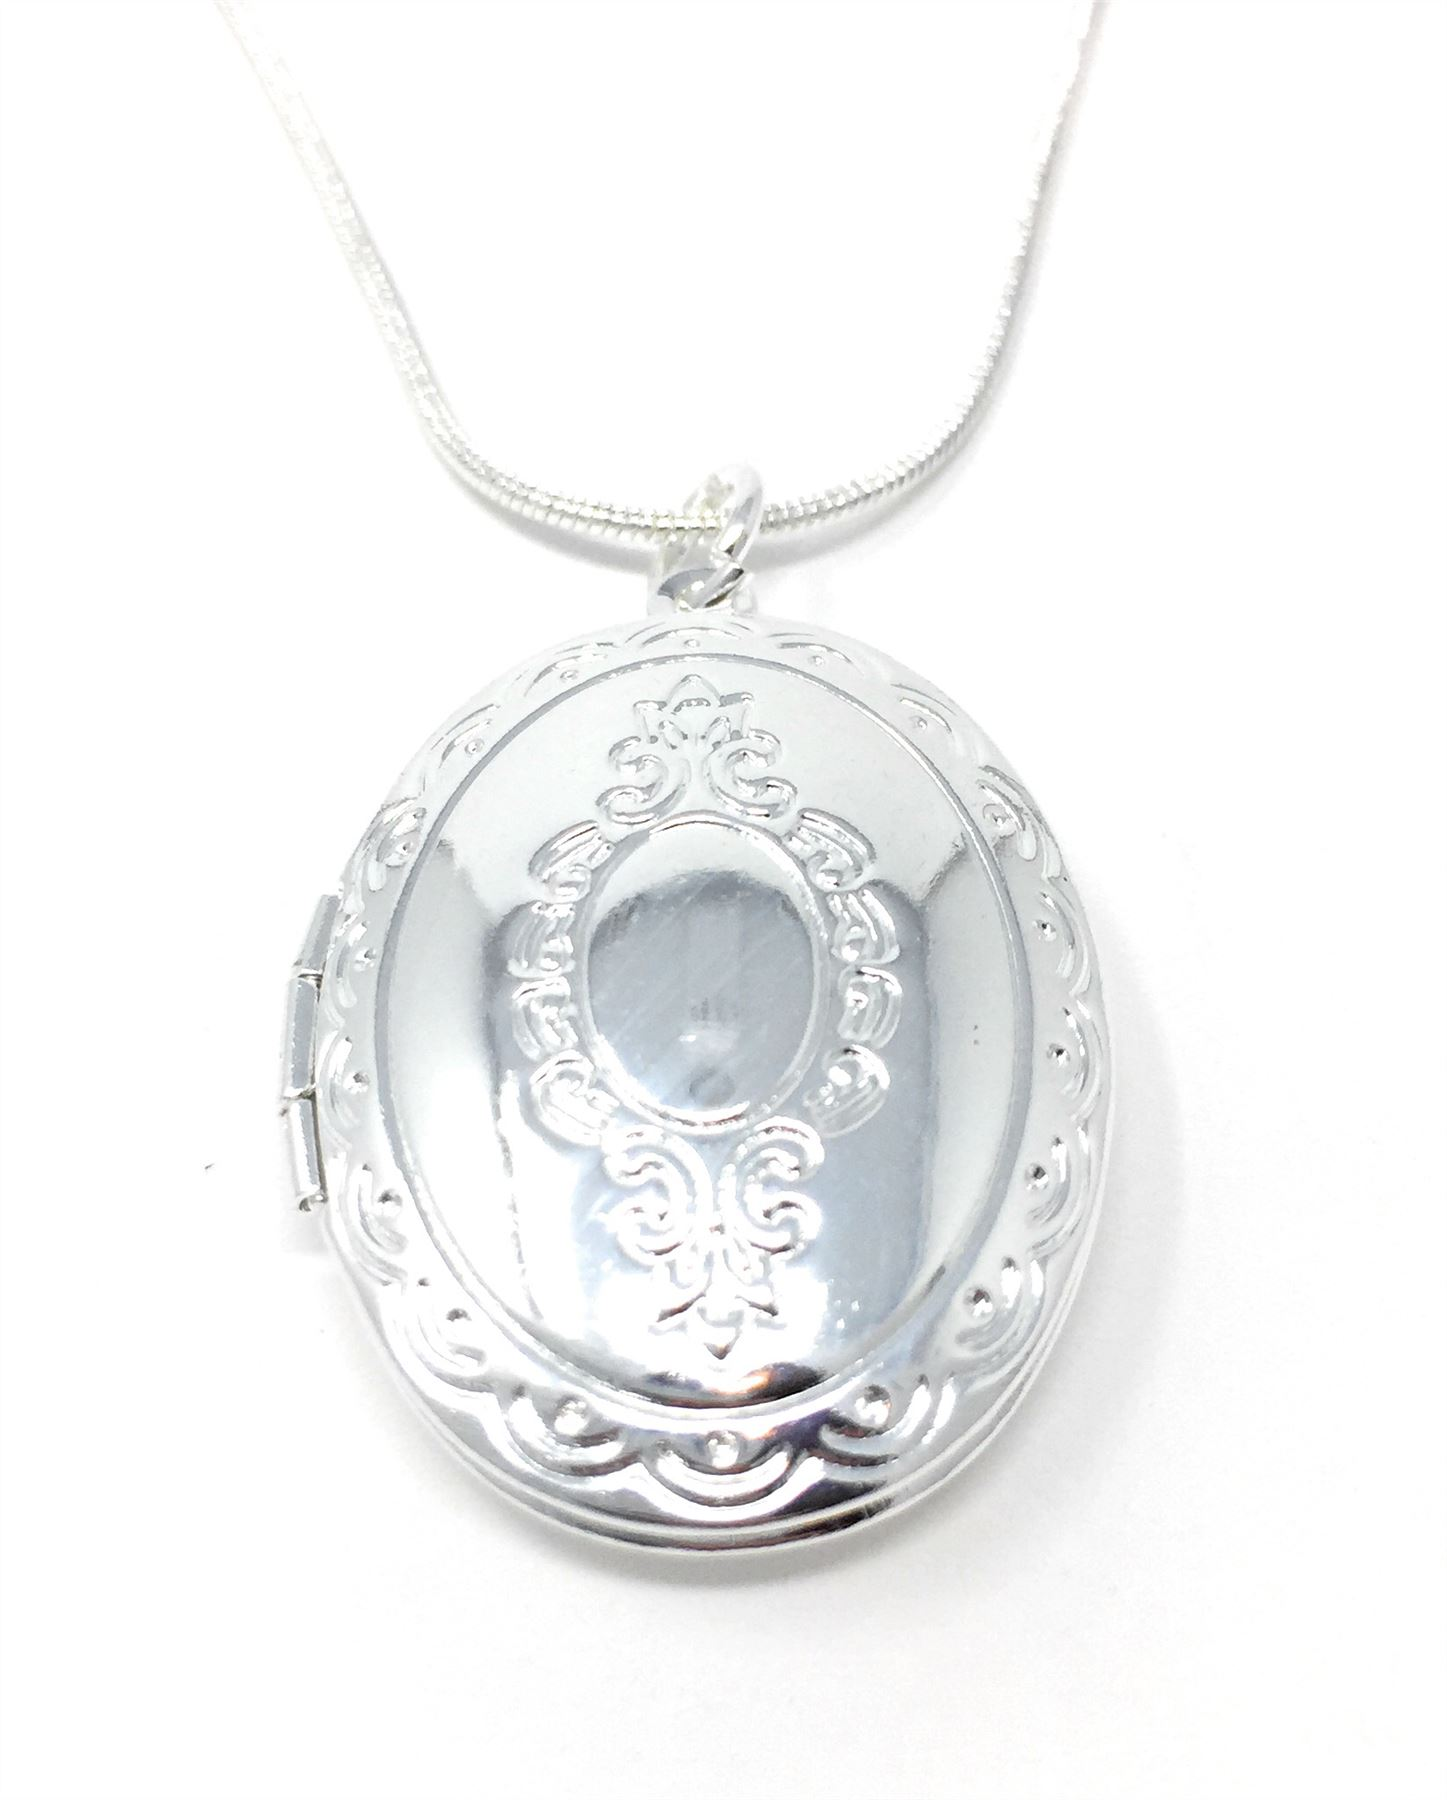 UK-925-SILVER-PLT-PENDANT-PHOTO-PICTURE-LOCKET-NECKLACE-18-034-INCH-CHAIN-LADIES thumbnail 33